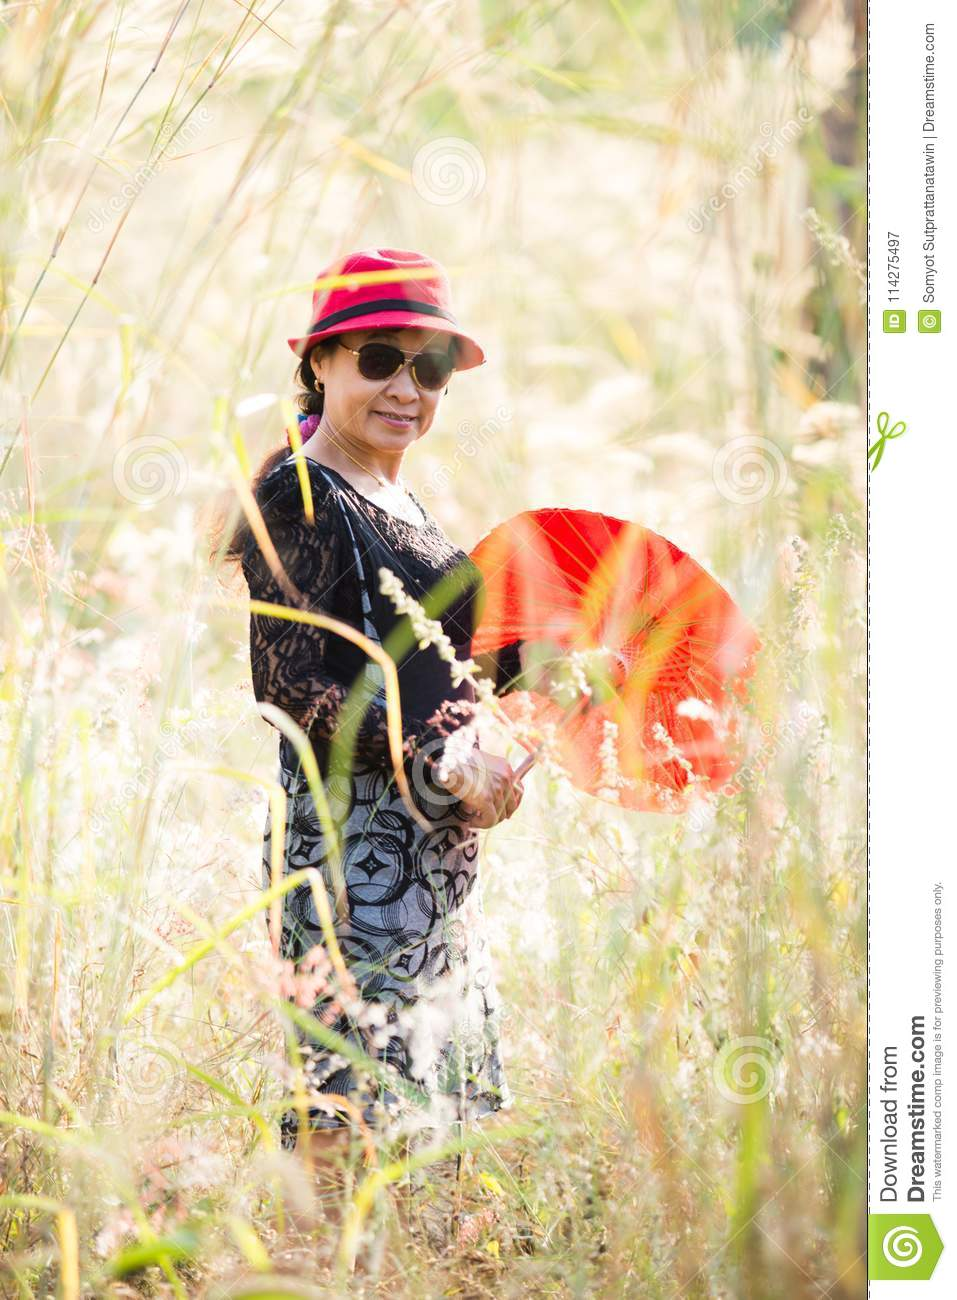 Asian women portrait with red umbrella